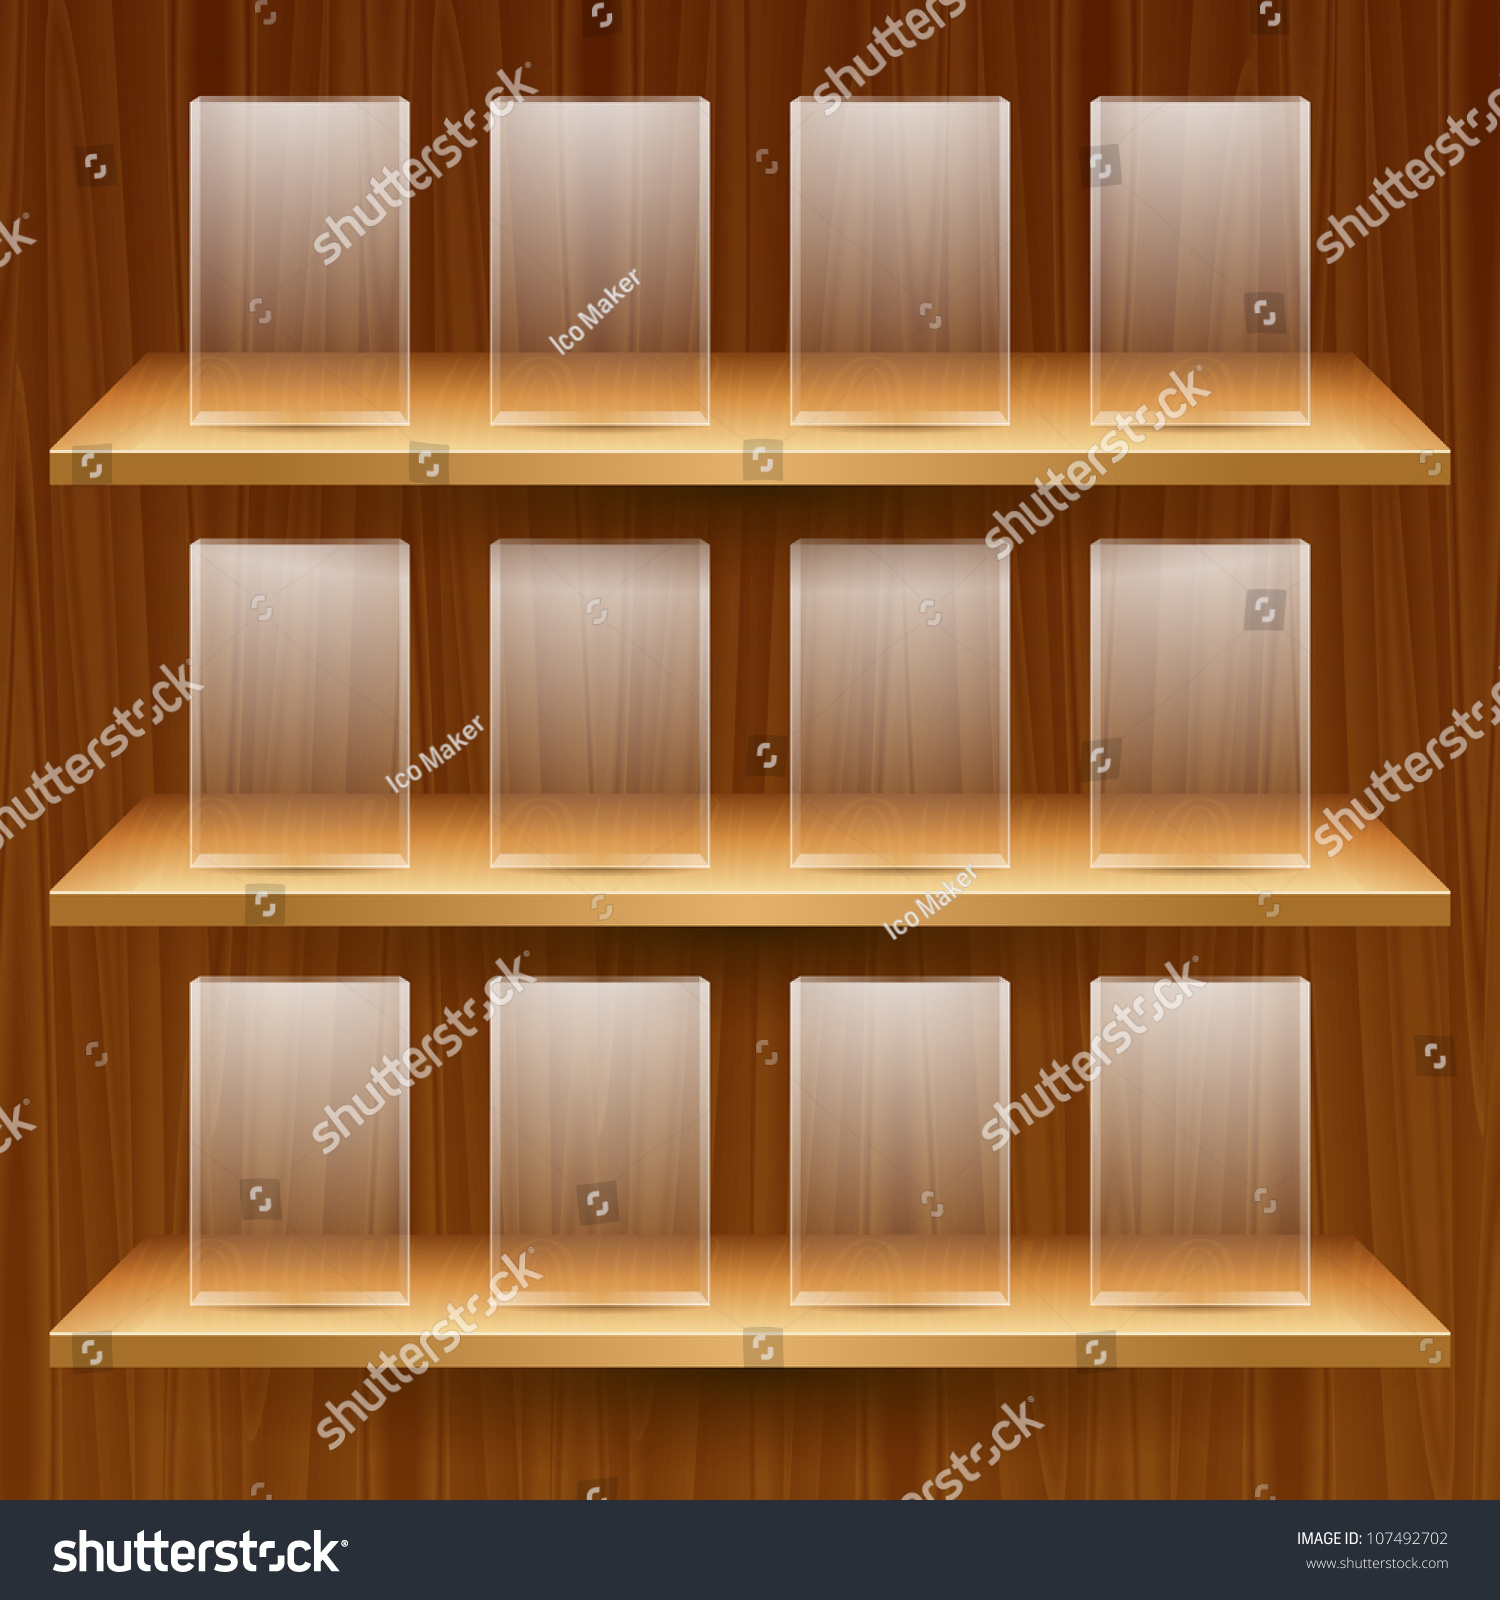 Interior wooden shelves free vector - Vector Wooden Shelves With Empty Glass Boxes